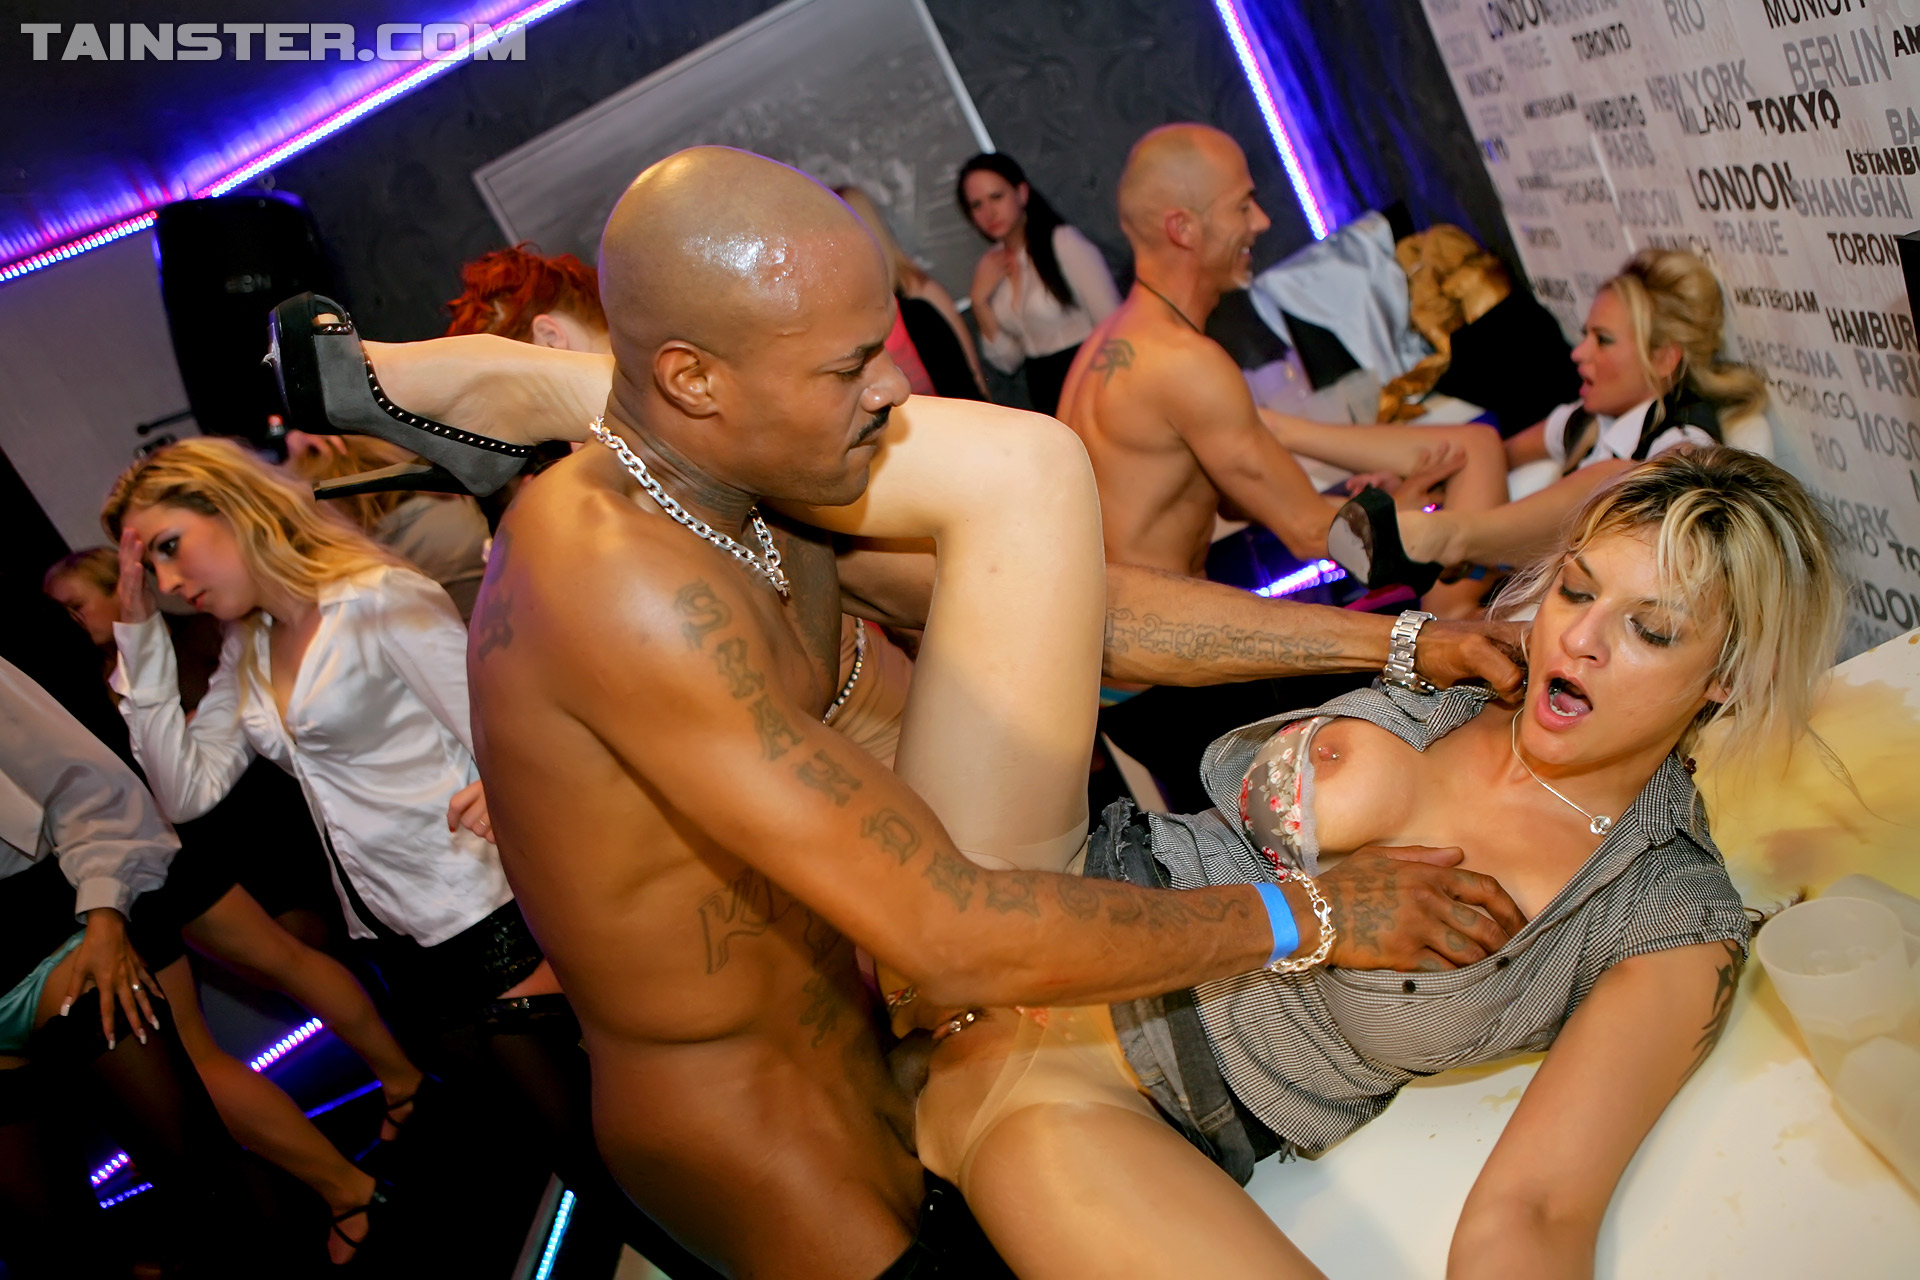 Party hardcore gone crazy free hd porn and sex pics